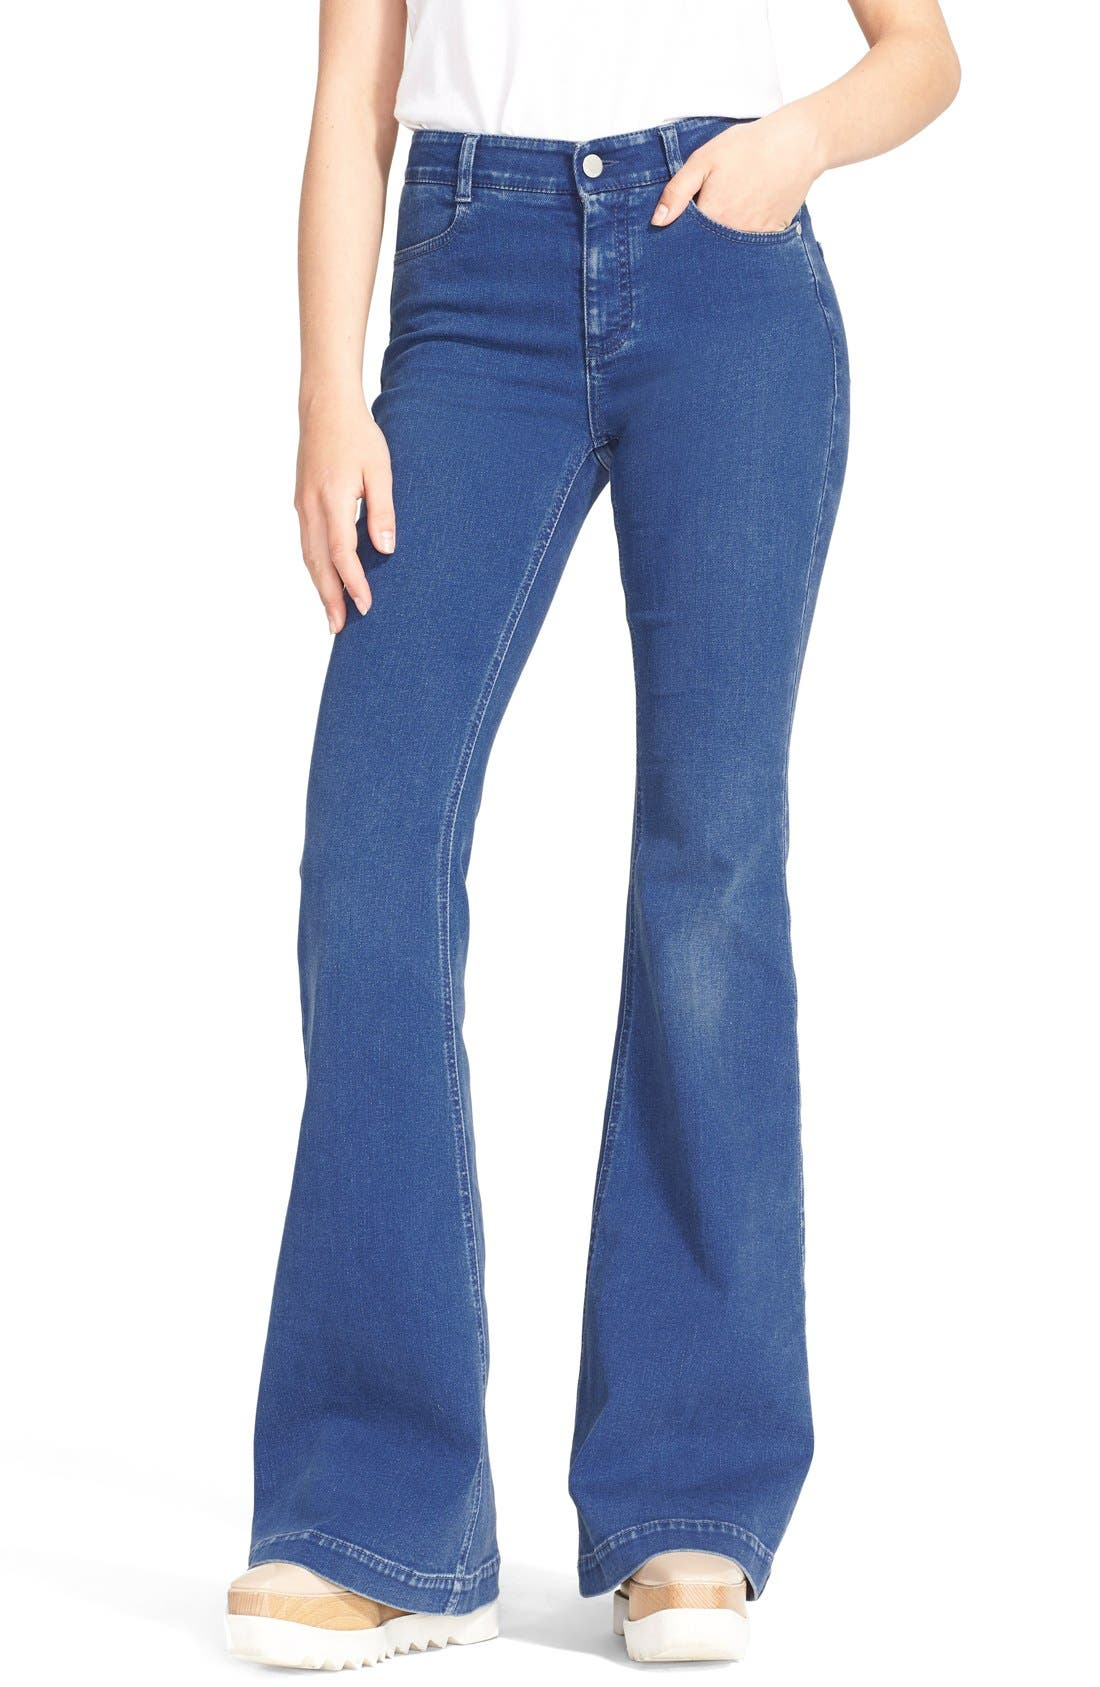 Alternate Image 1 Selected - Stella McCartney 'The '70s' Flare Jeans